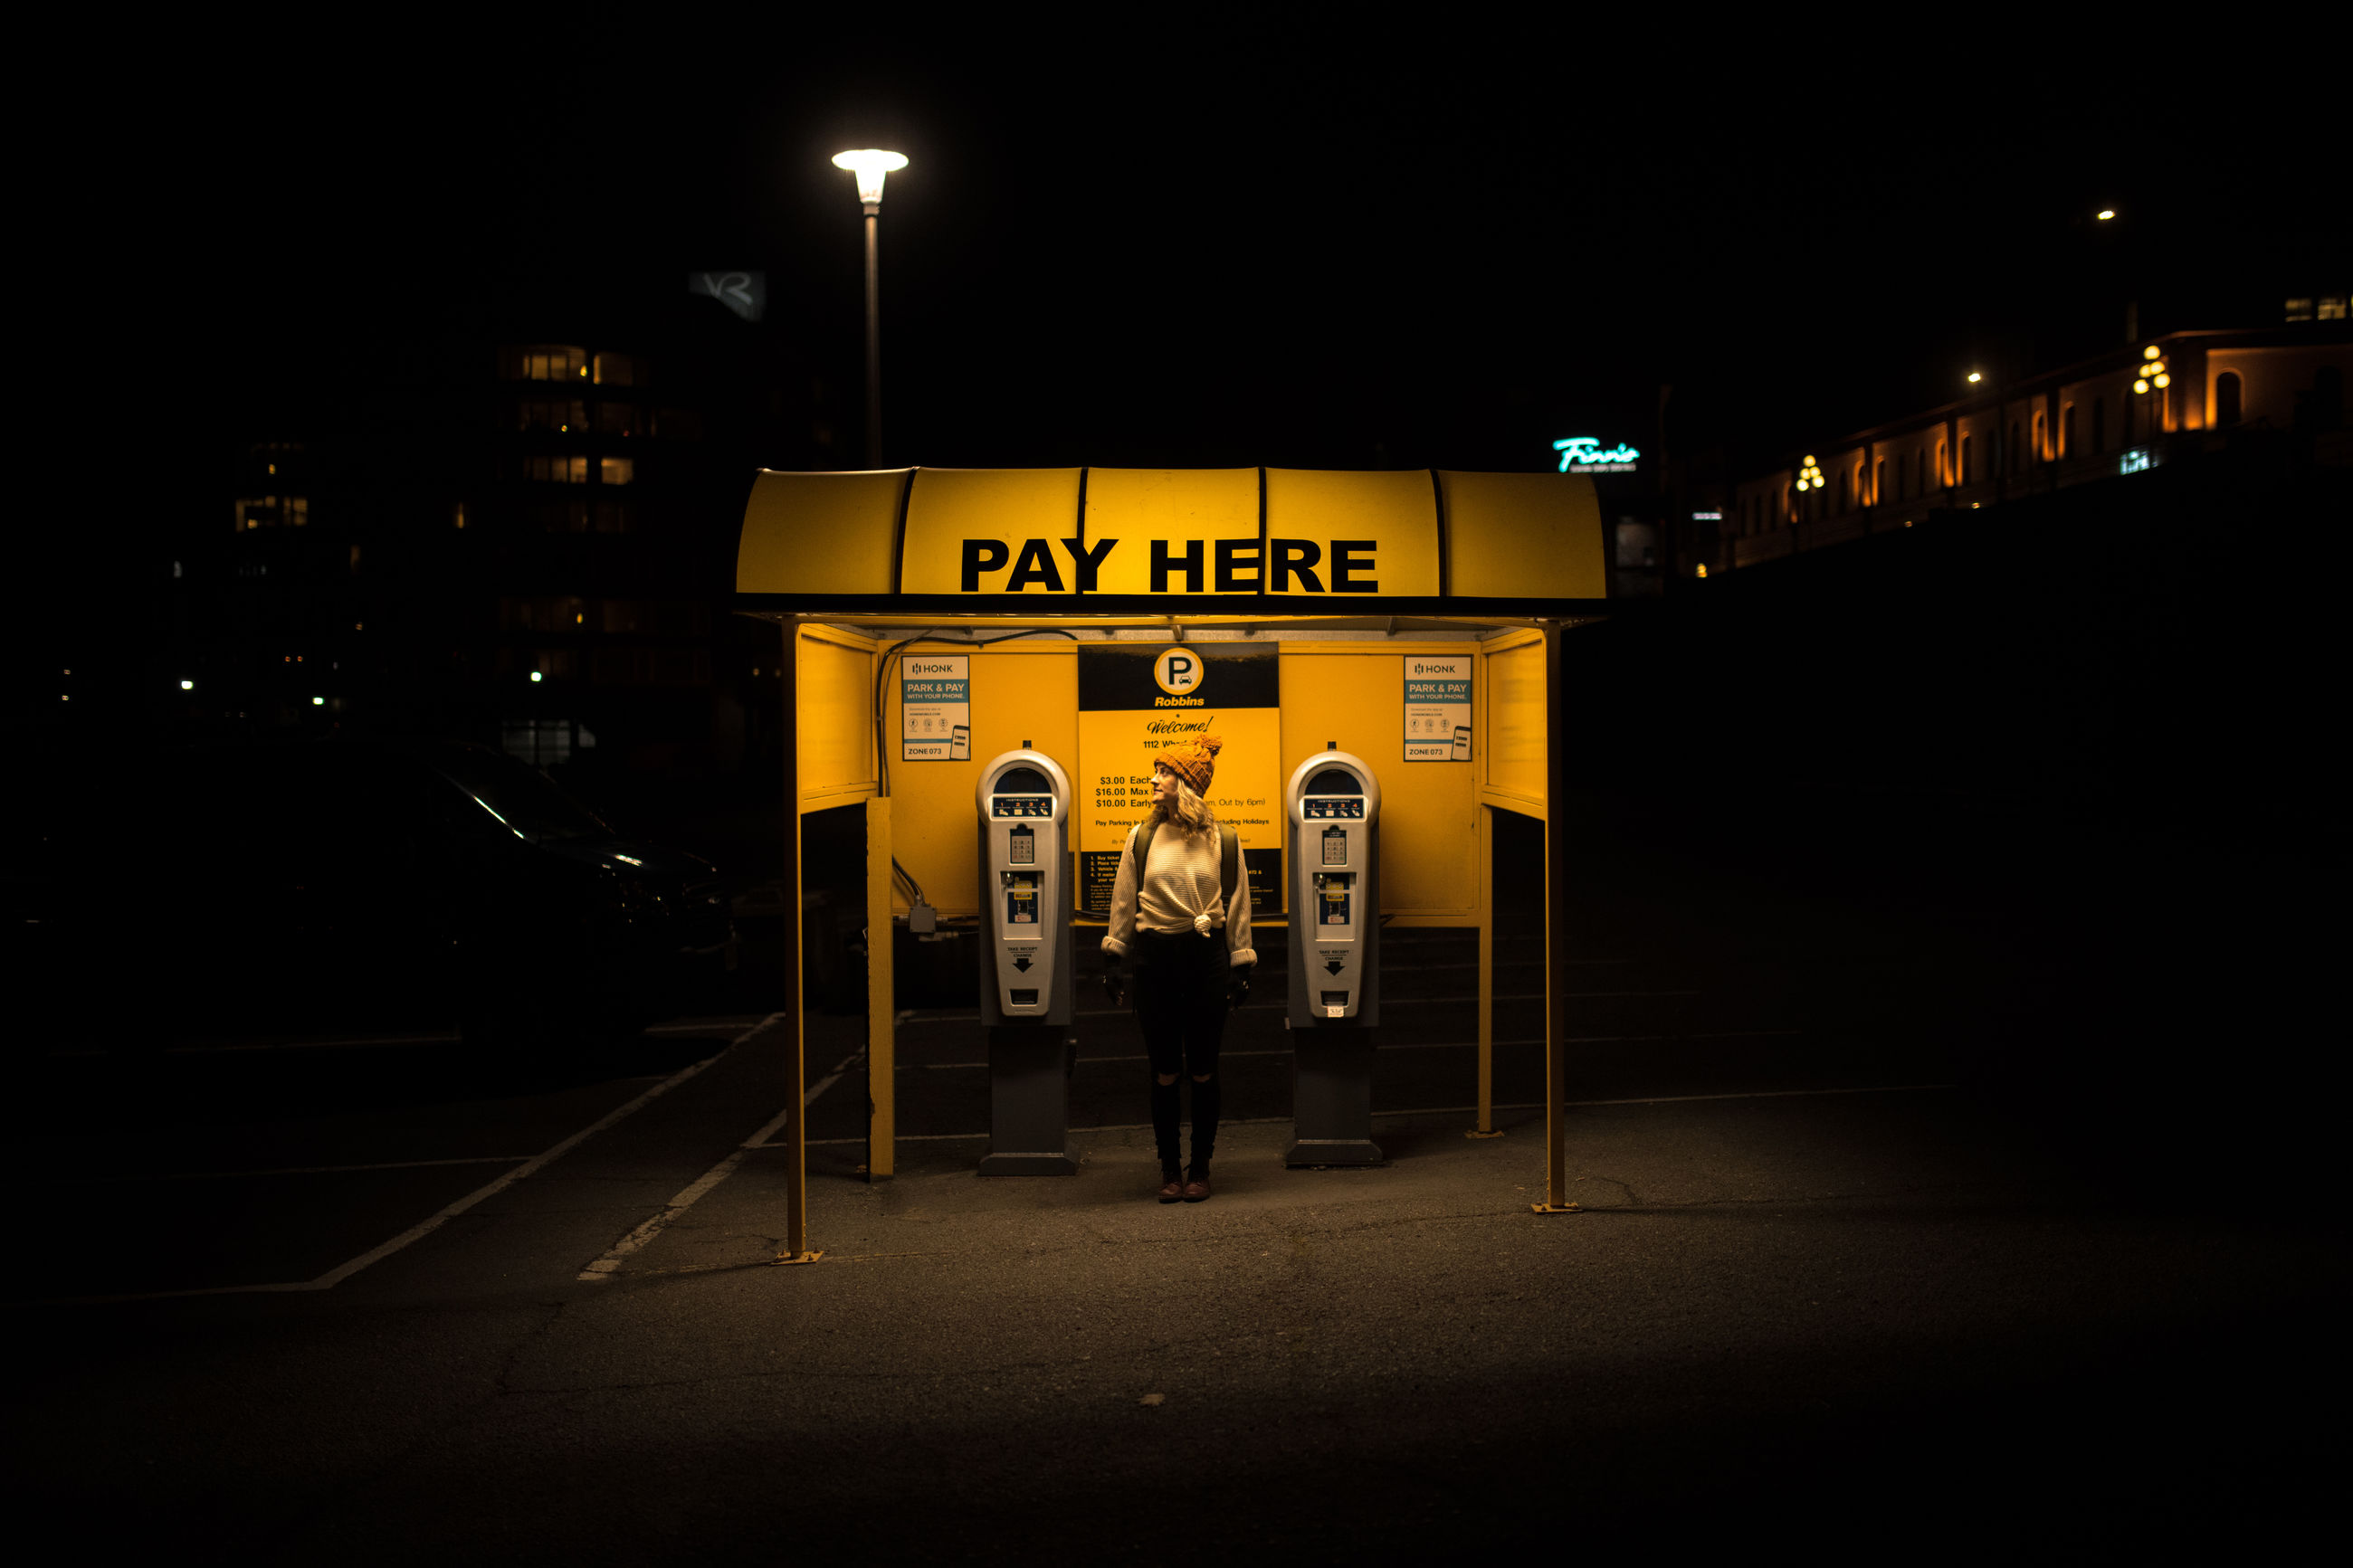 illuminated, night, architecture, text, built structure, building exterior, western script, communication, sign, city, real people, one person, full length, street, lifestyles, capital letter, lighting equipment, outdoors, footpath, transportation